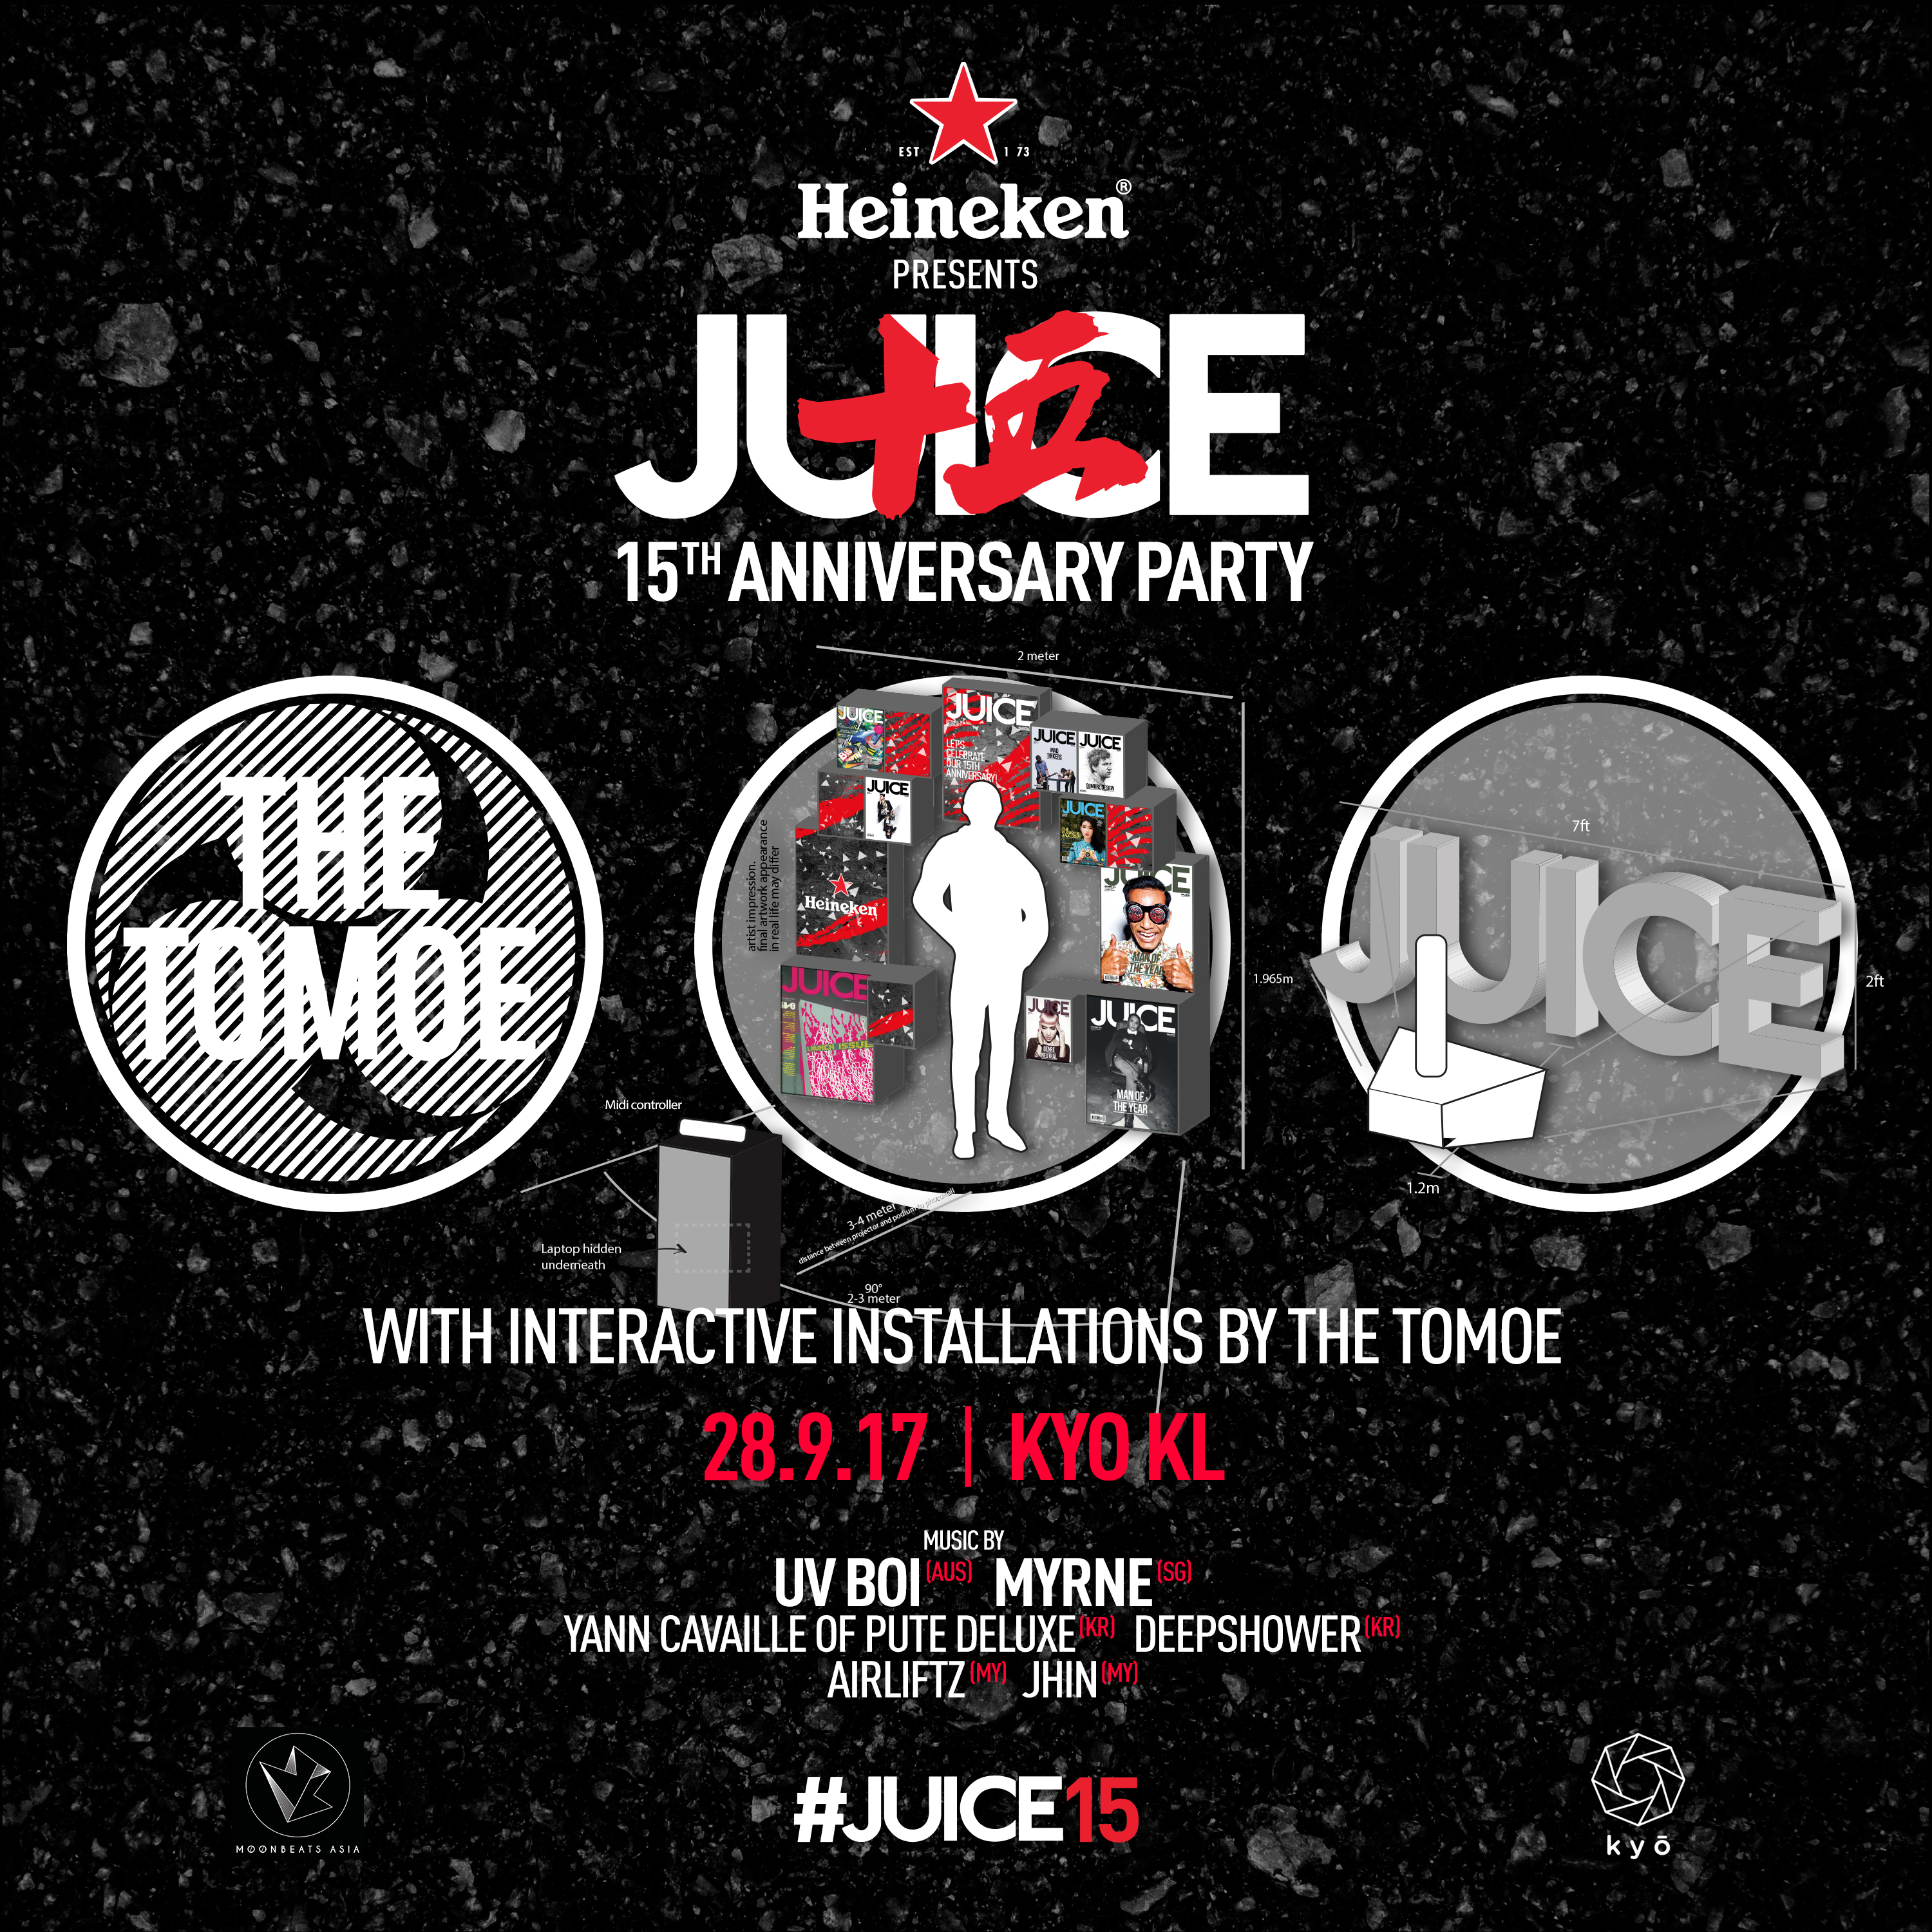 JUICE 15 ANNI The Tomoe Poster